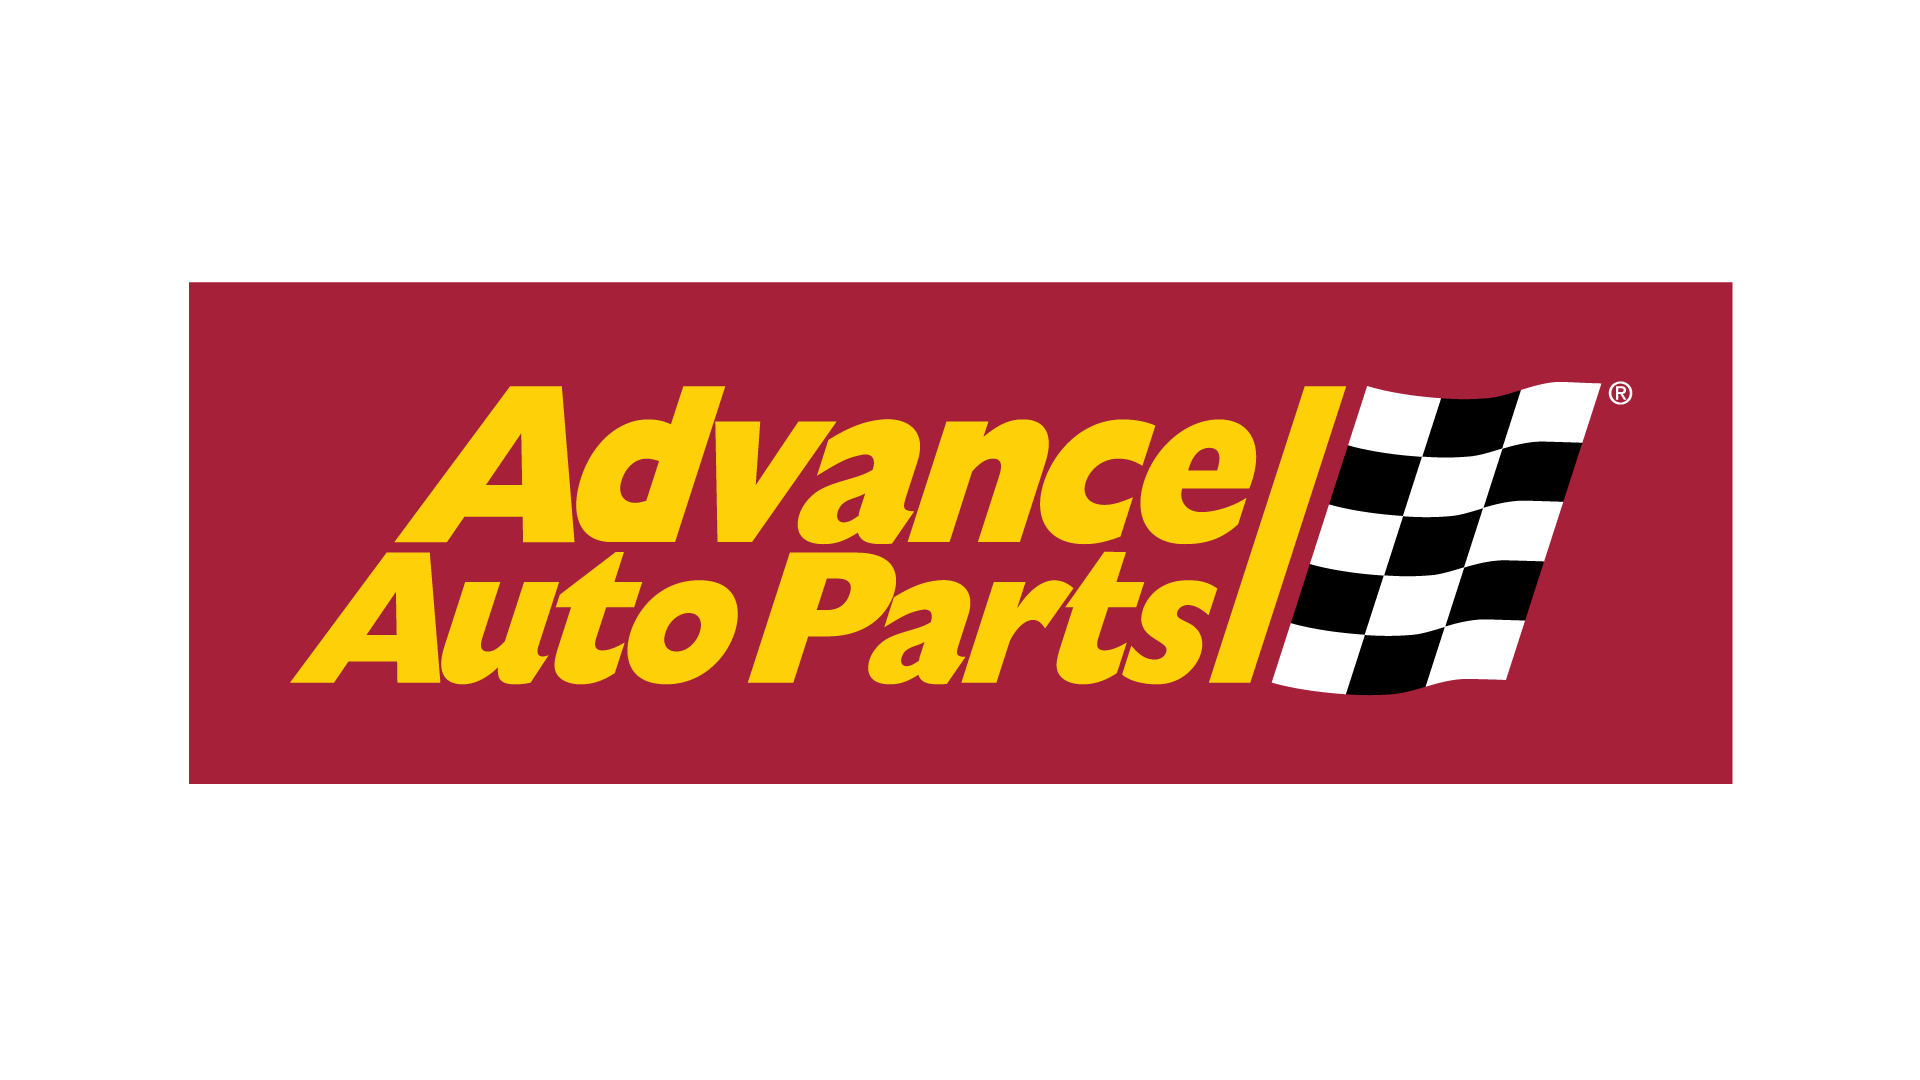 Advance Auto Parts Number >> Advance Auto Parts Inc Nyse Aap Rings The Nyse Opening